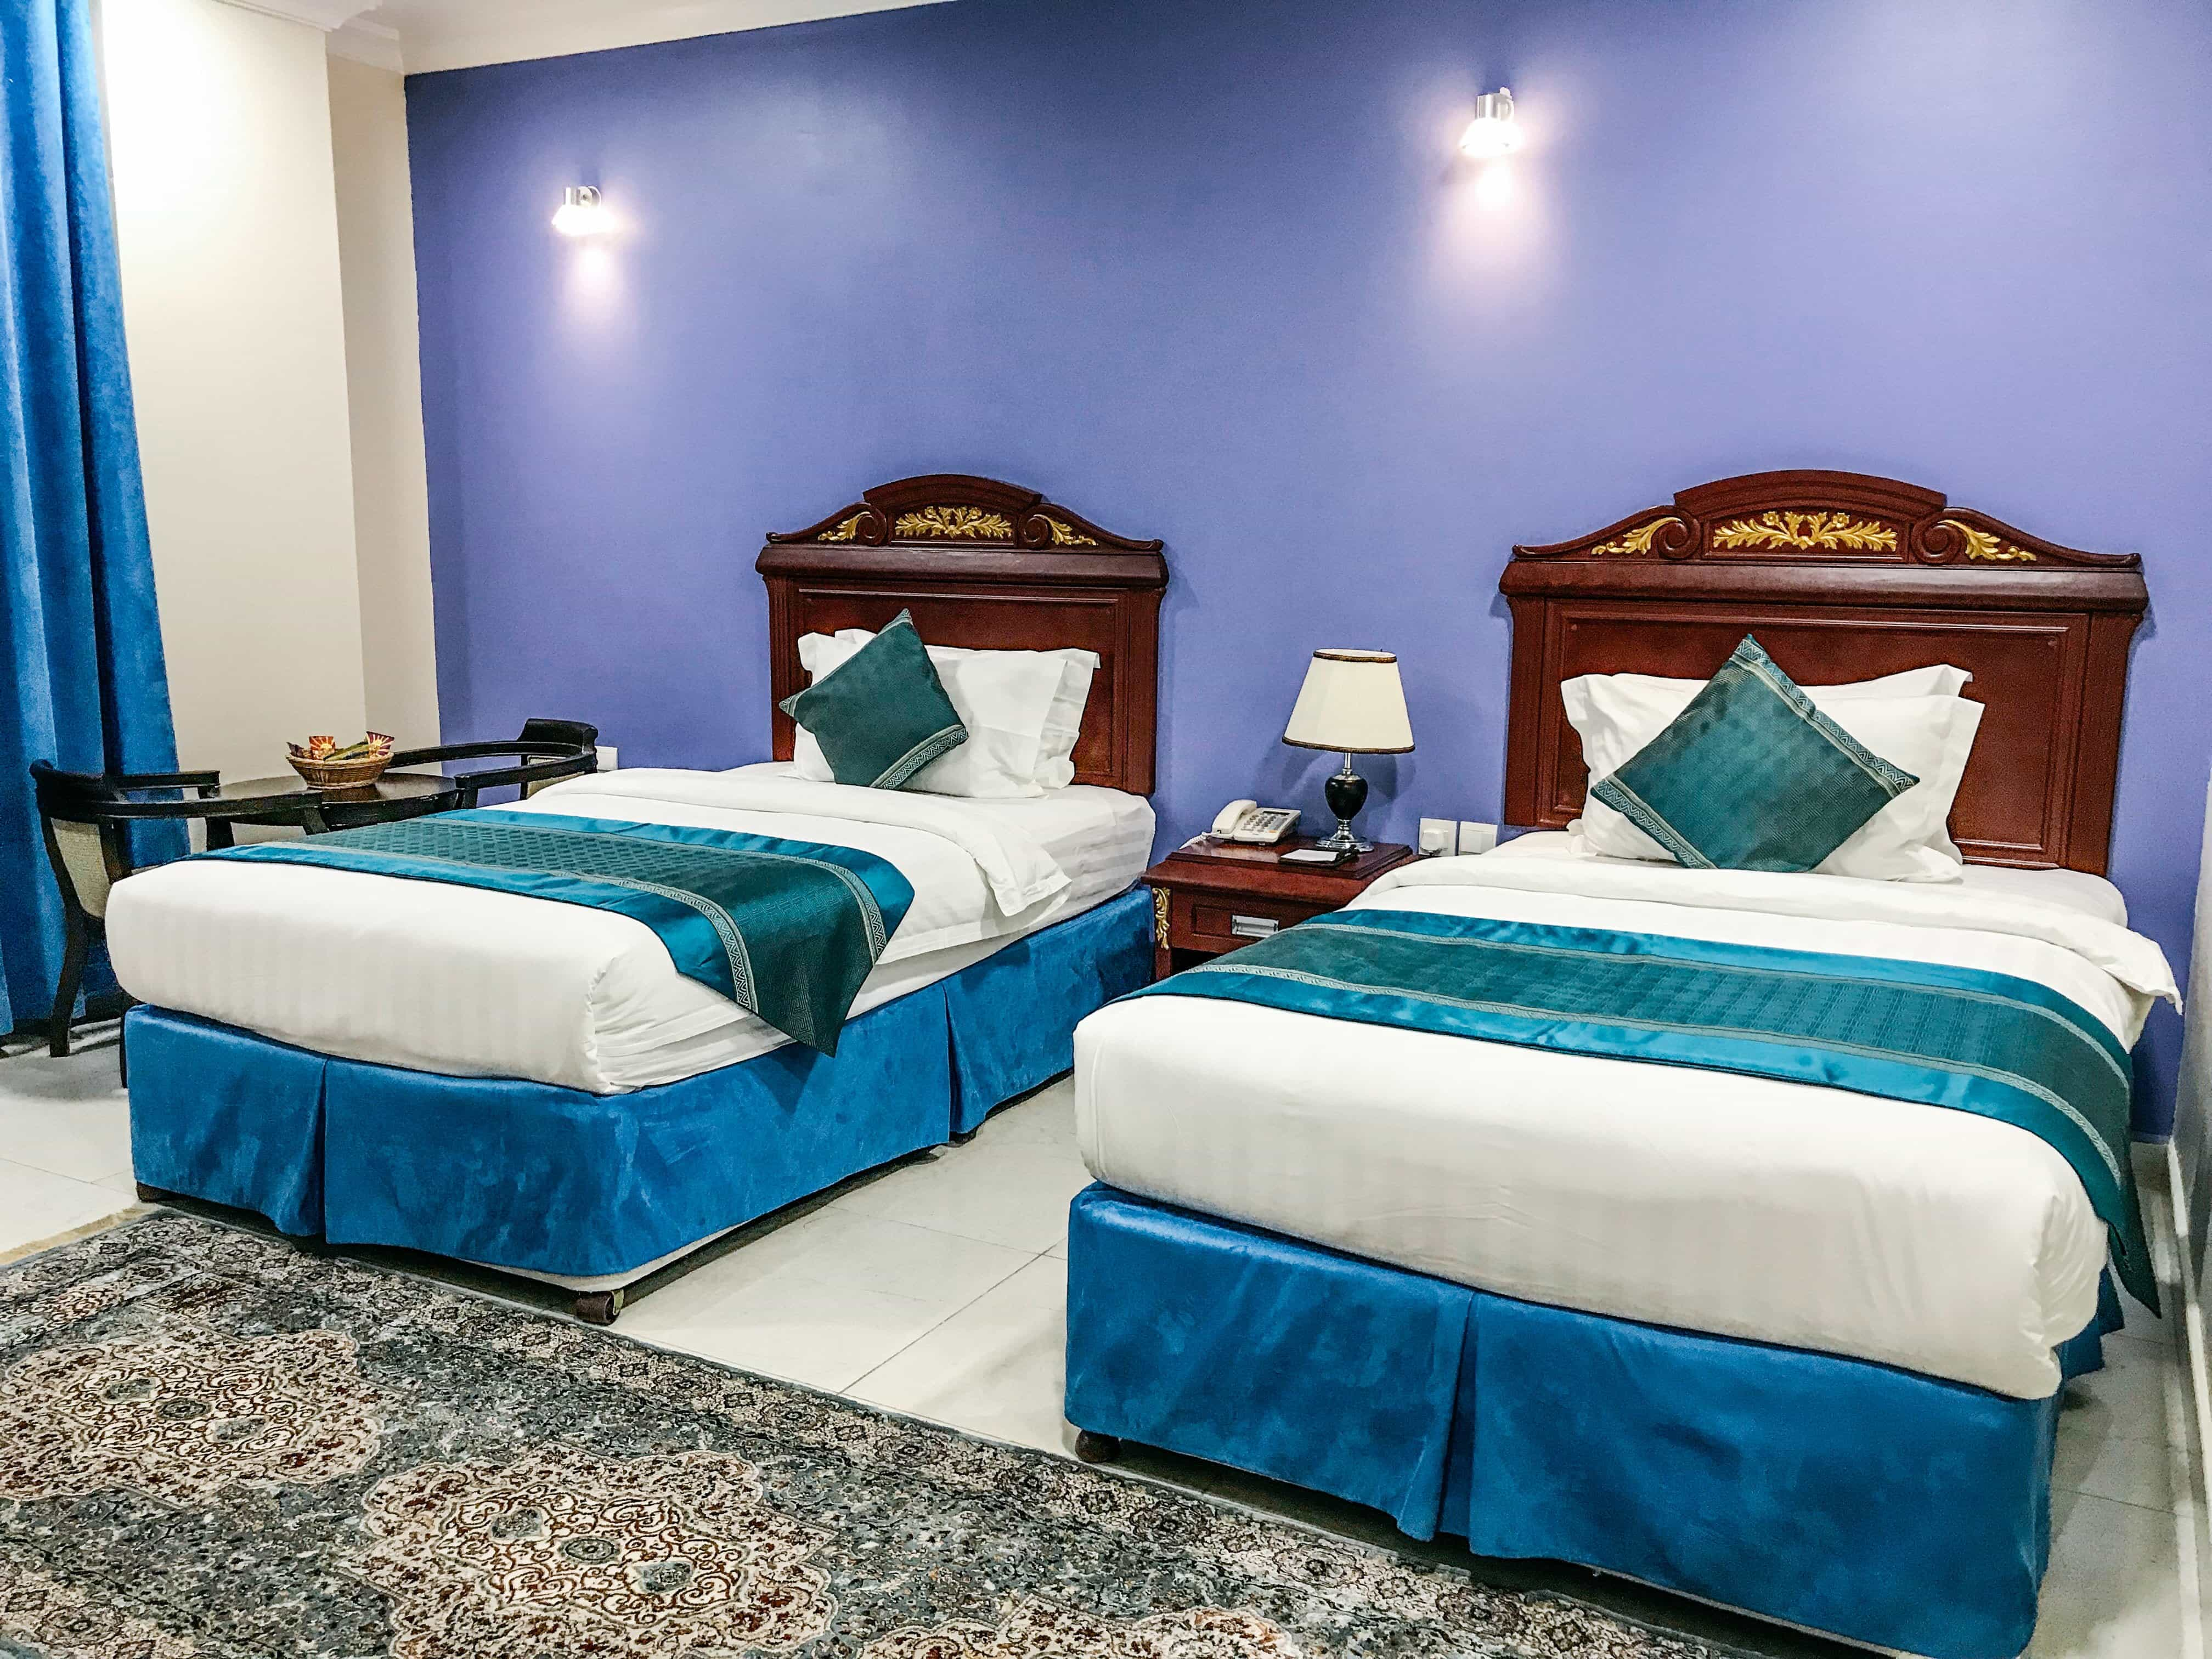 hotel room in oman with two beds